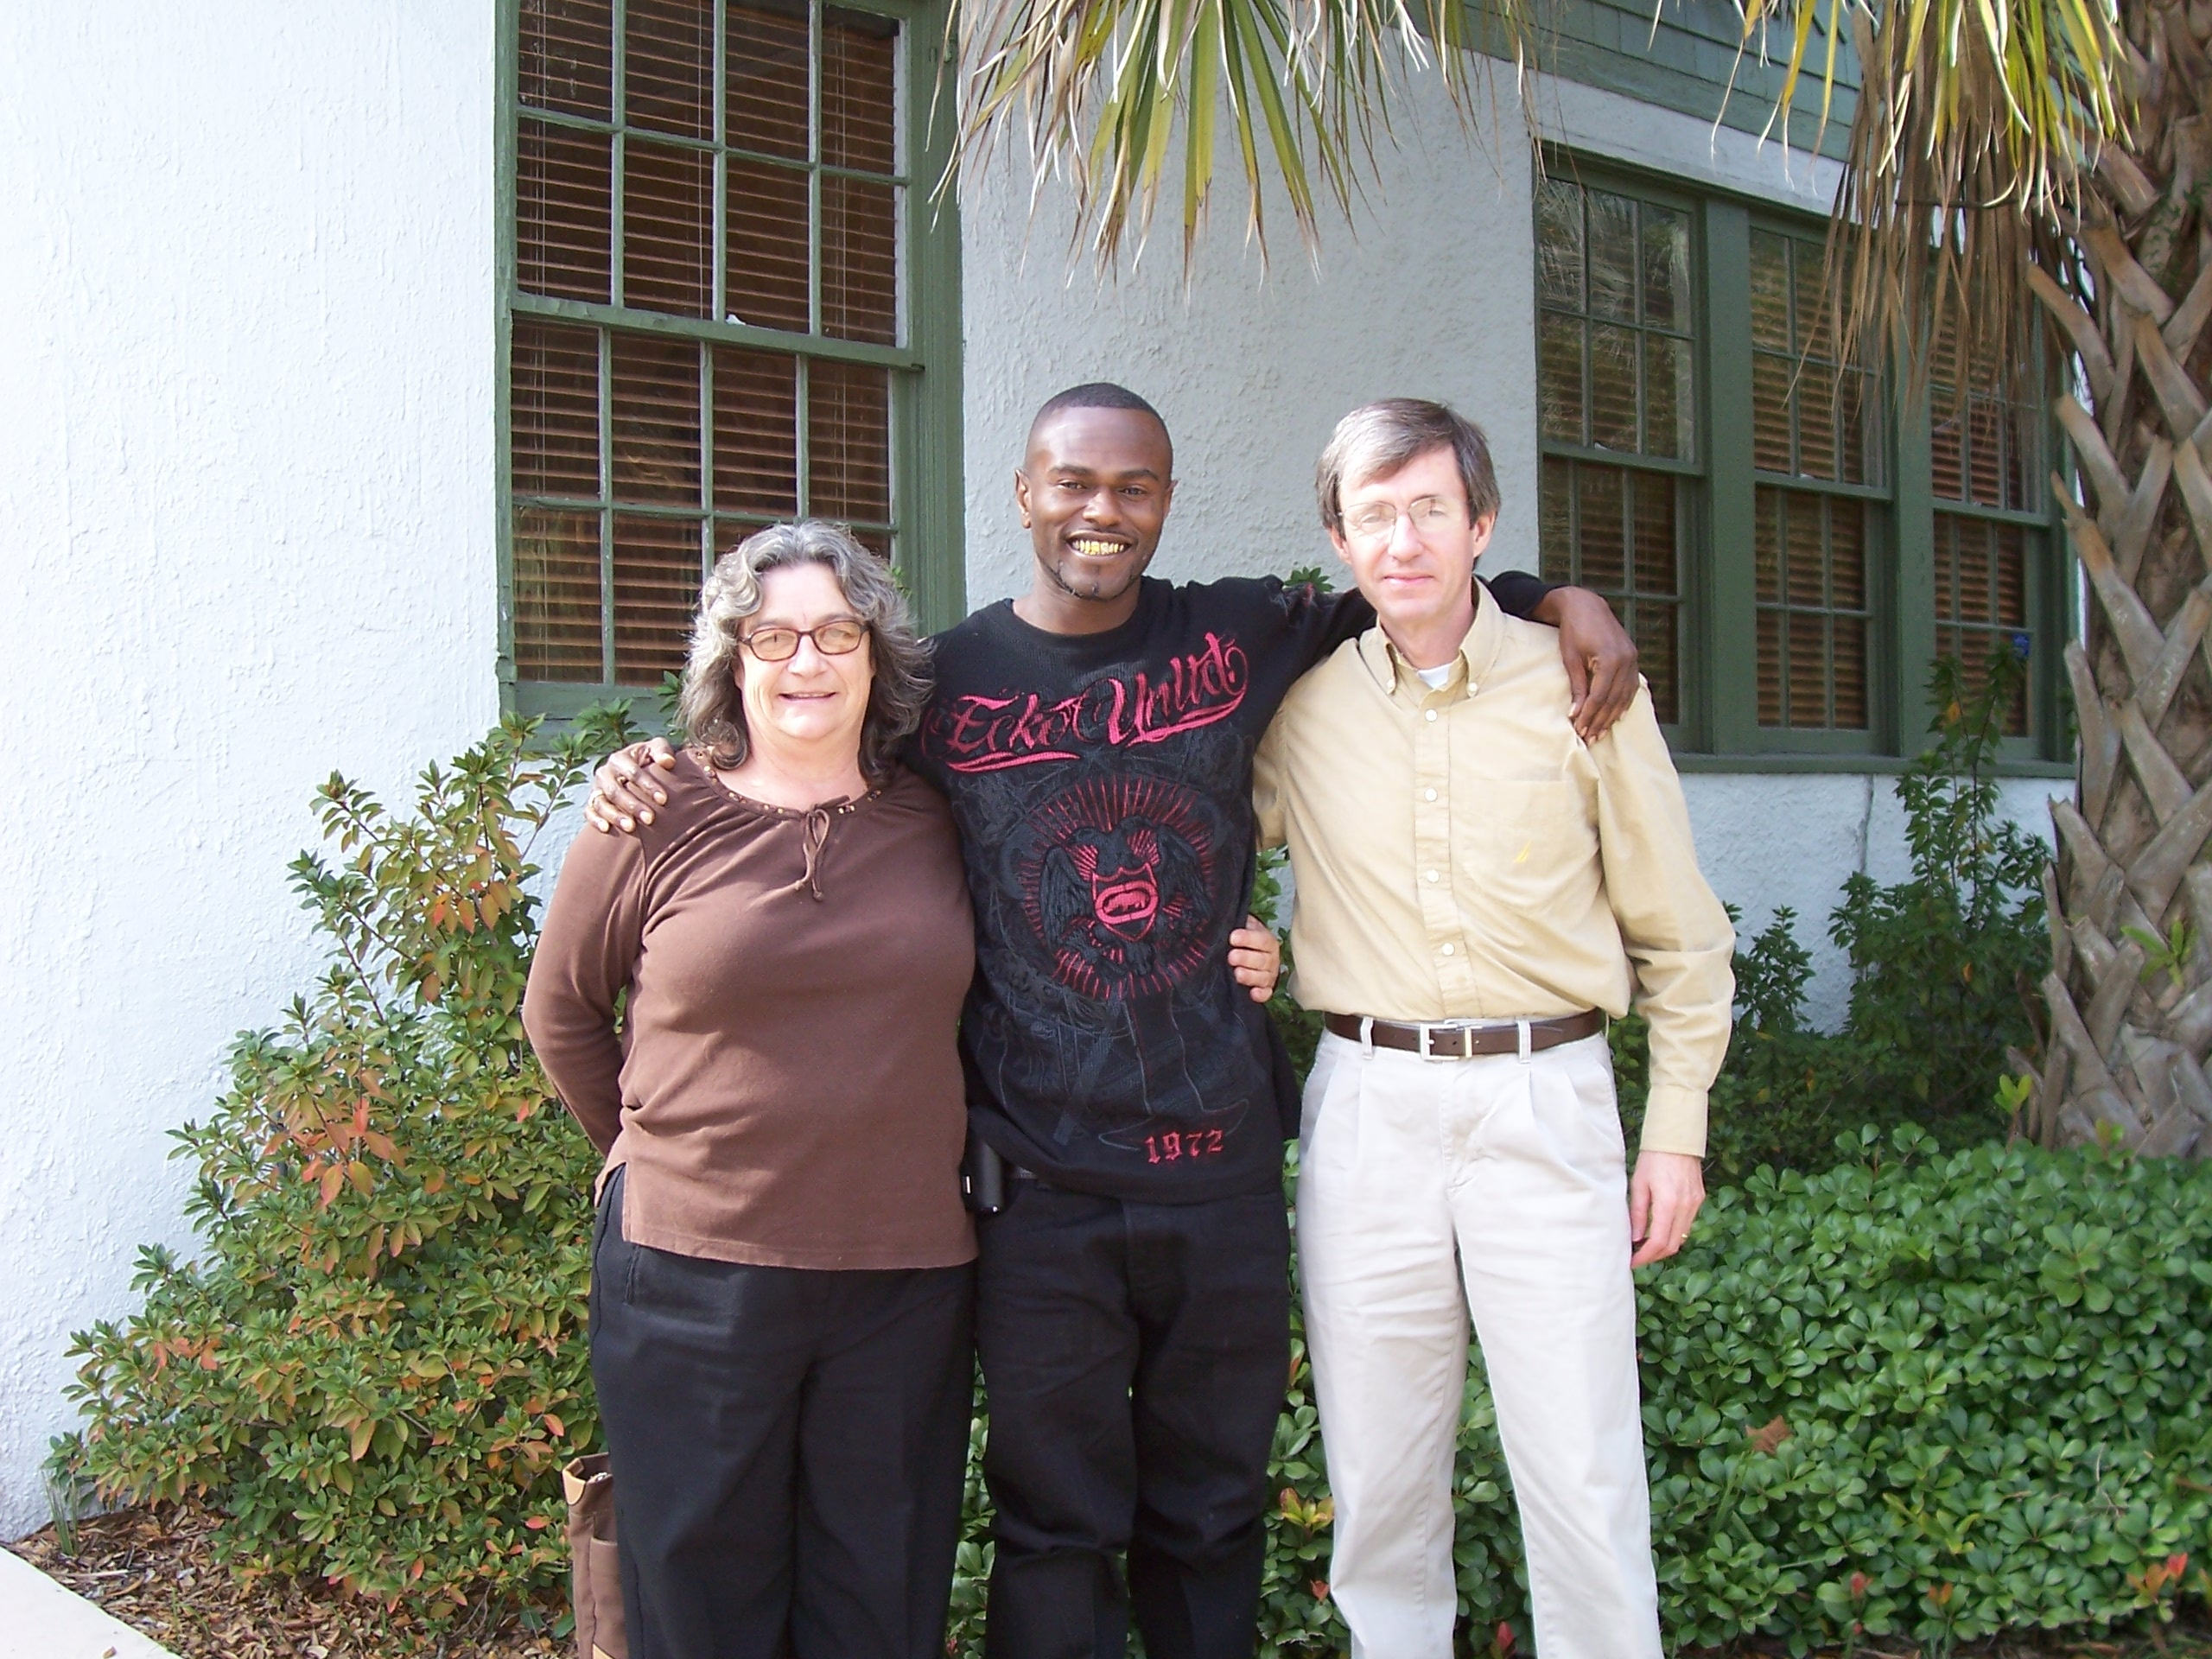 Susan Davis, Willie Lee Slater and William Kent at Mr. Kent's Office after Mr. Slater's Release from Prison